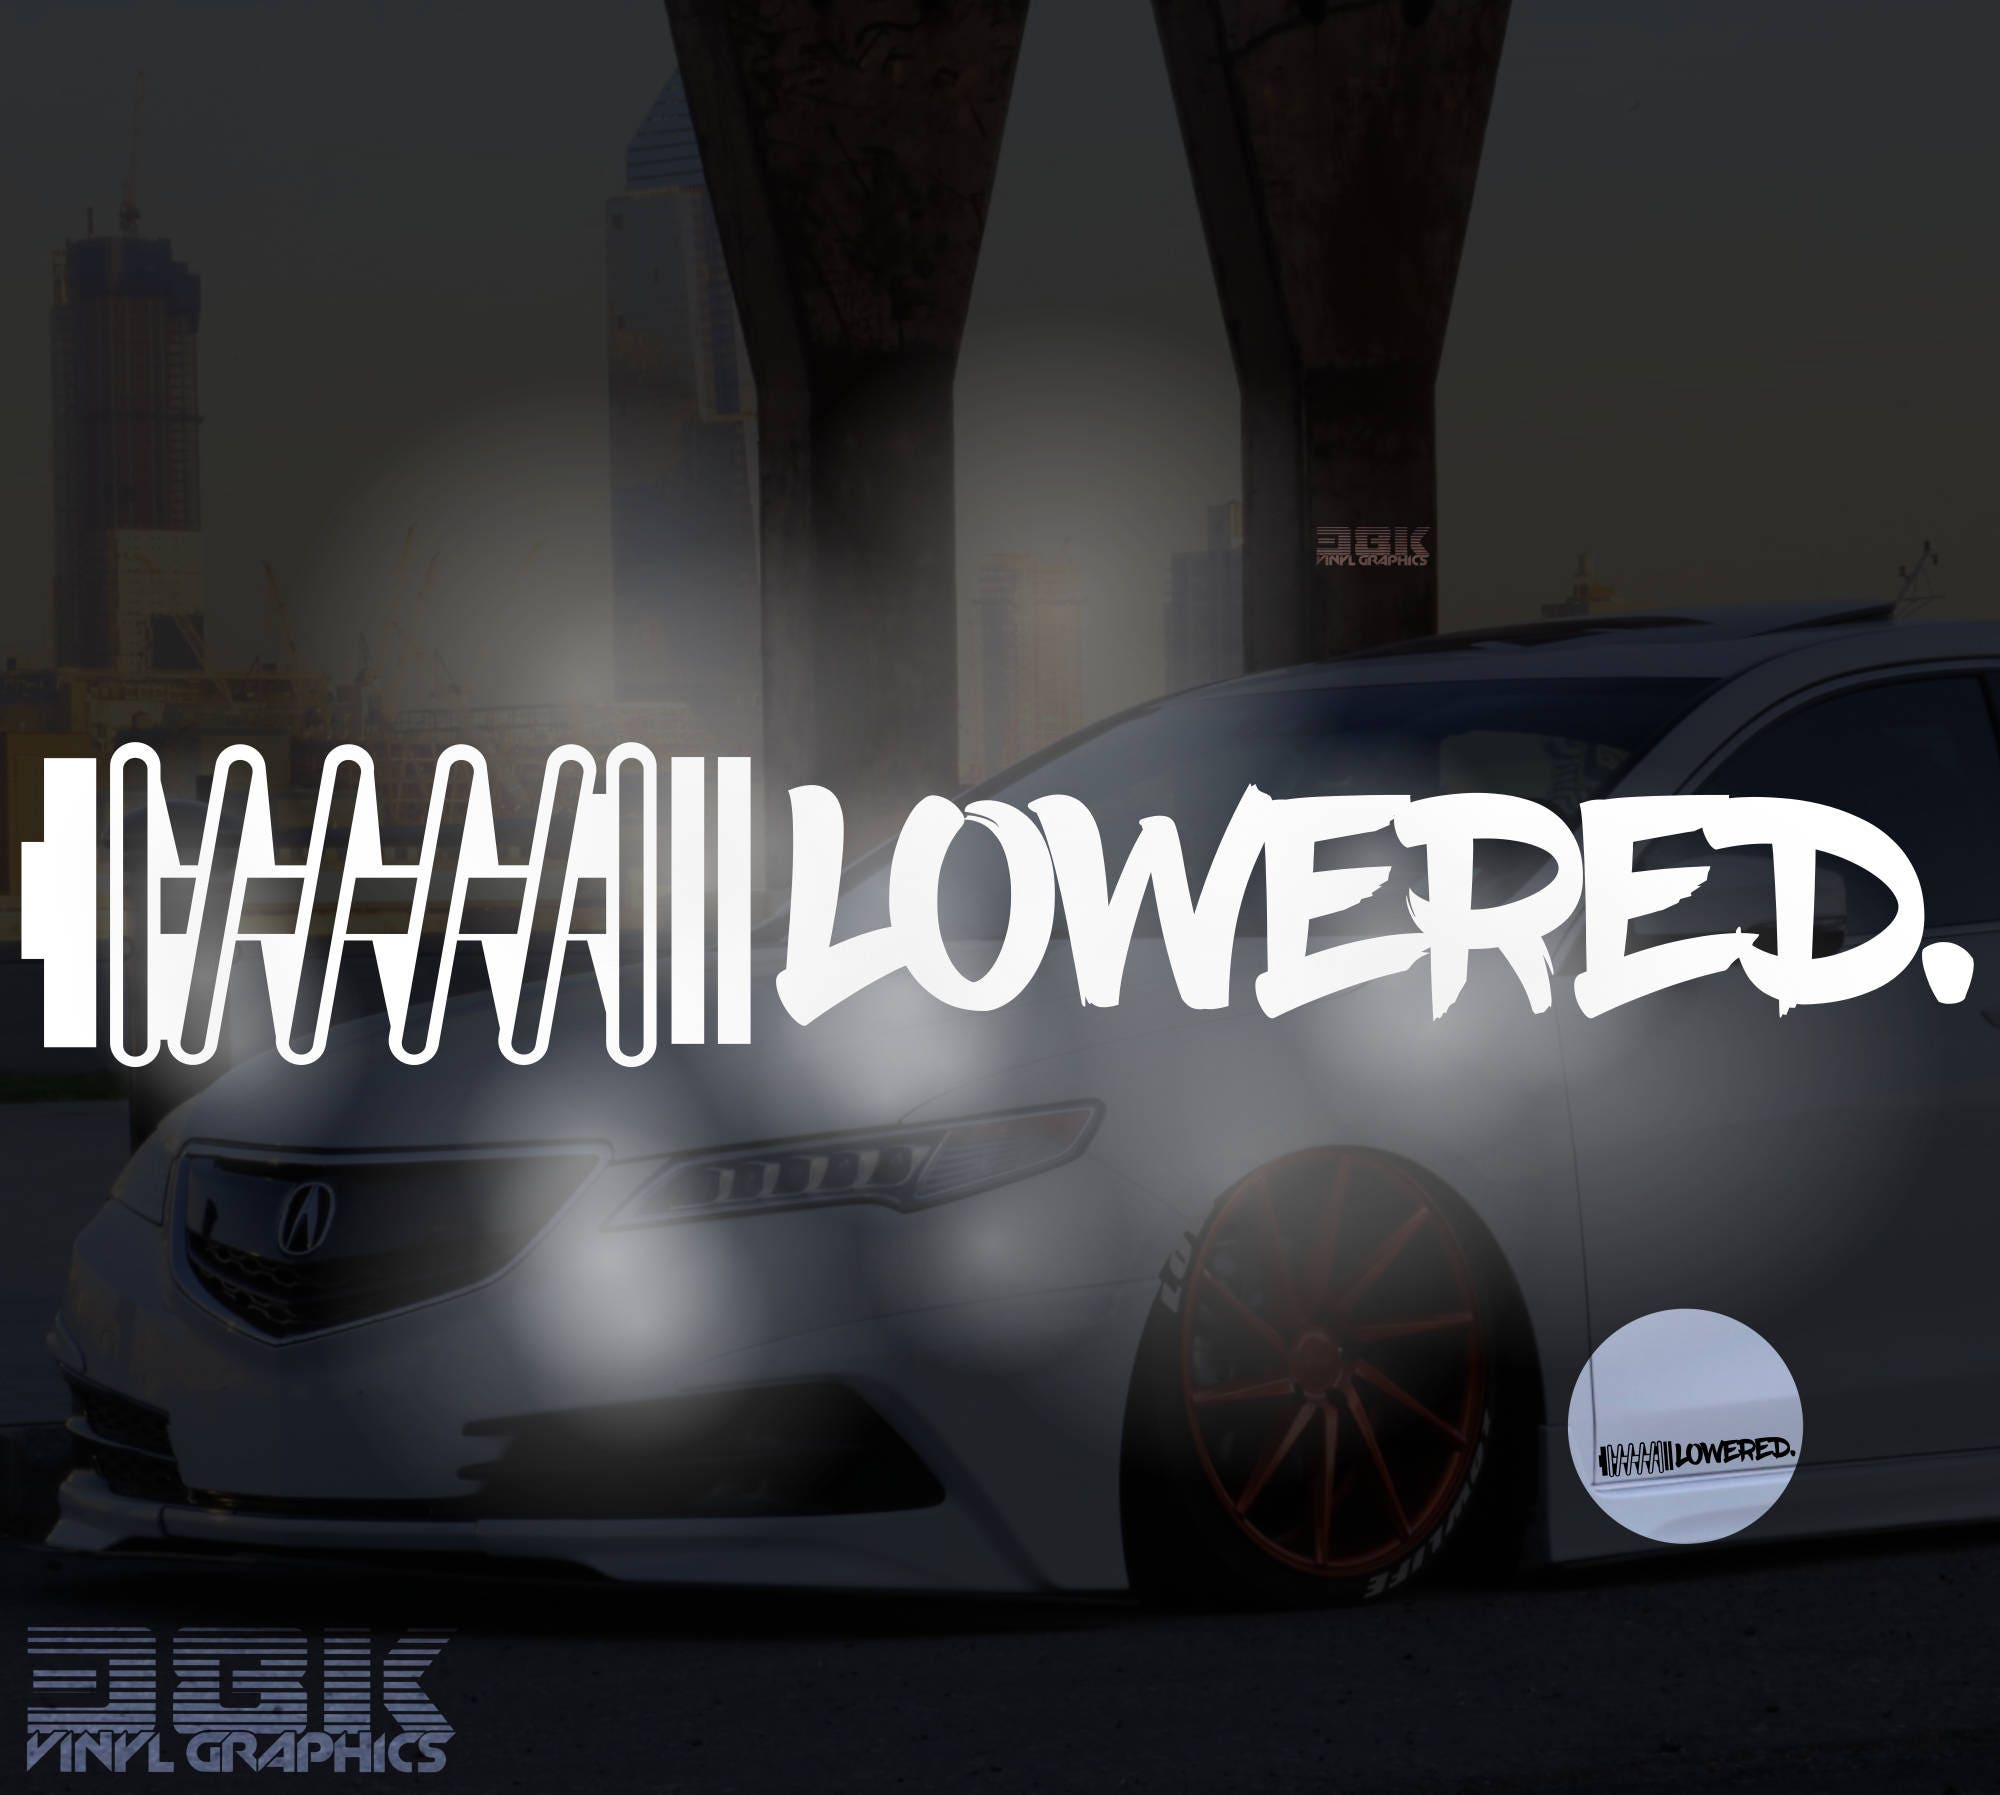 Static Coilover Auto Aufkleber Low Lowered Stance Tuning Autoaufkleber